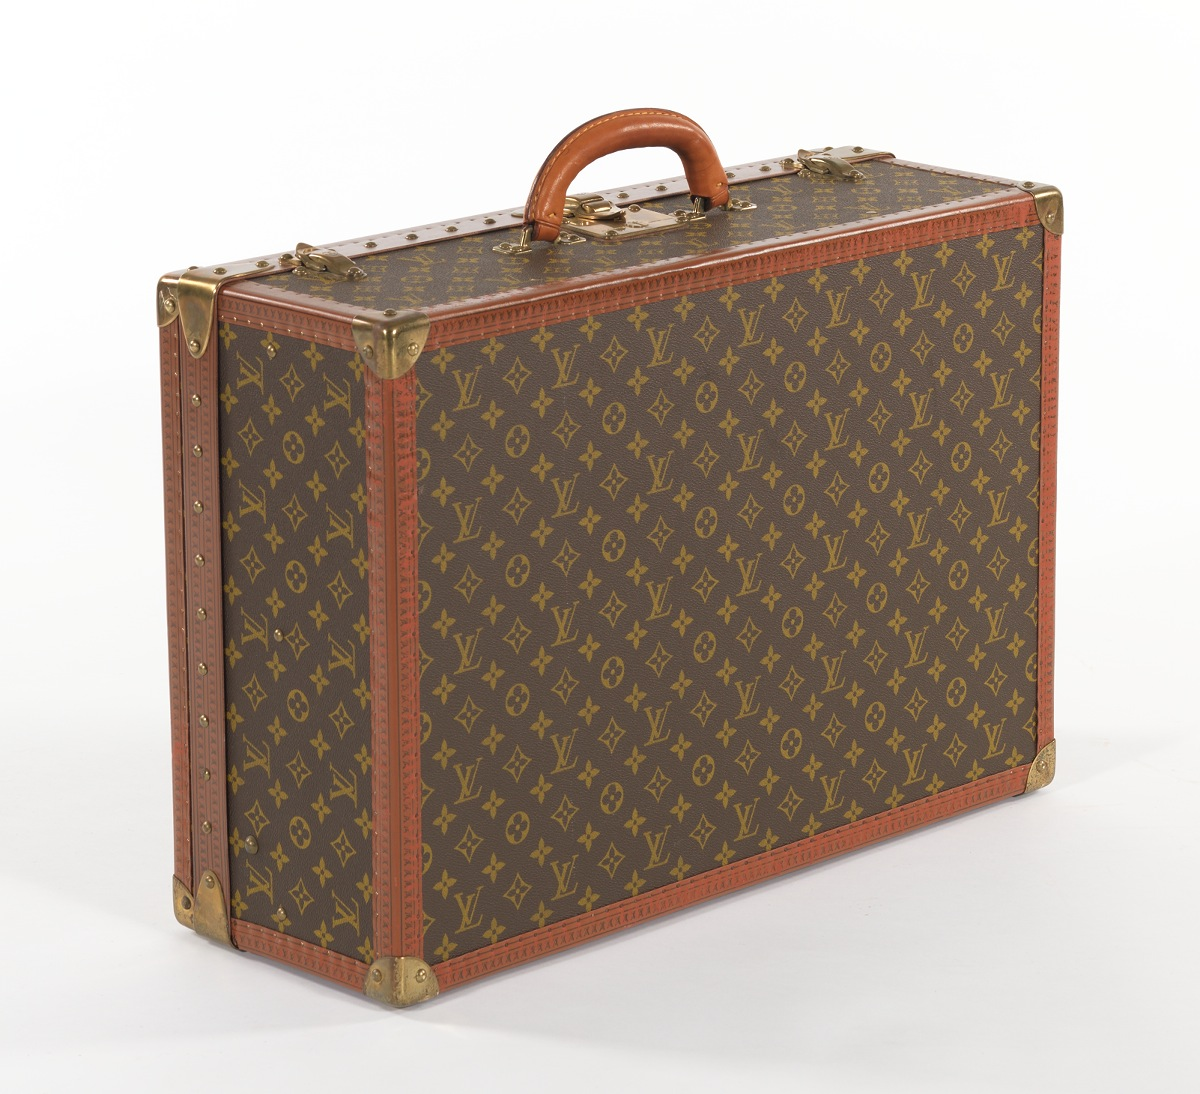 louis vuitton alzer 60 vintage suitcase ca 1980 39 s sold 1495. Black Bedroom Furniture Sets. Home Design Ideas